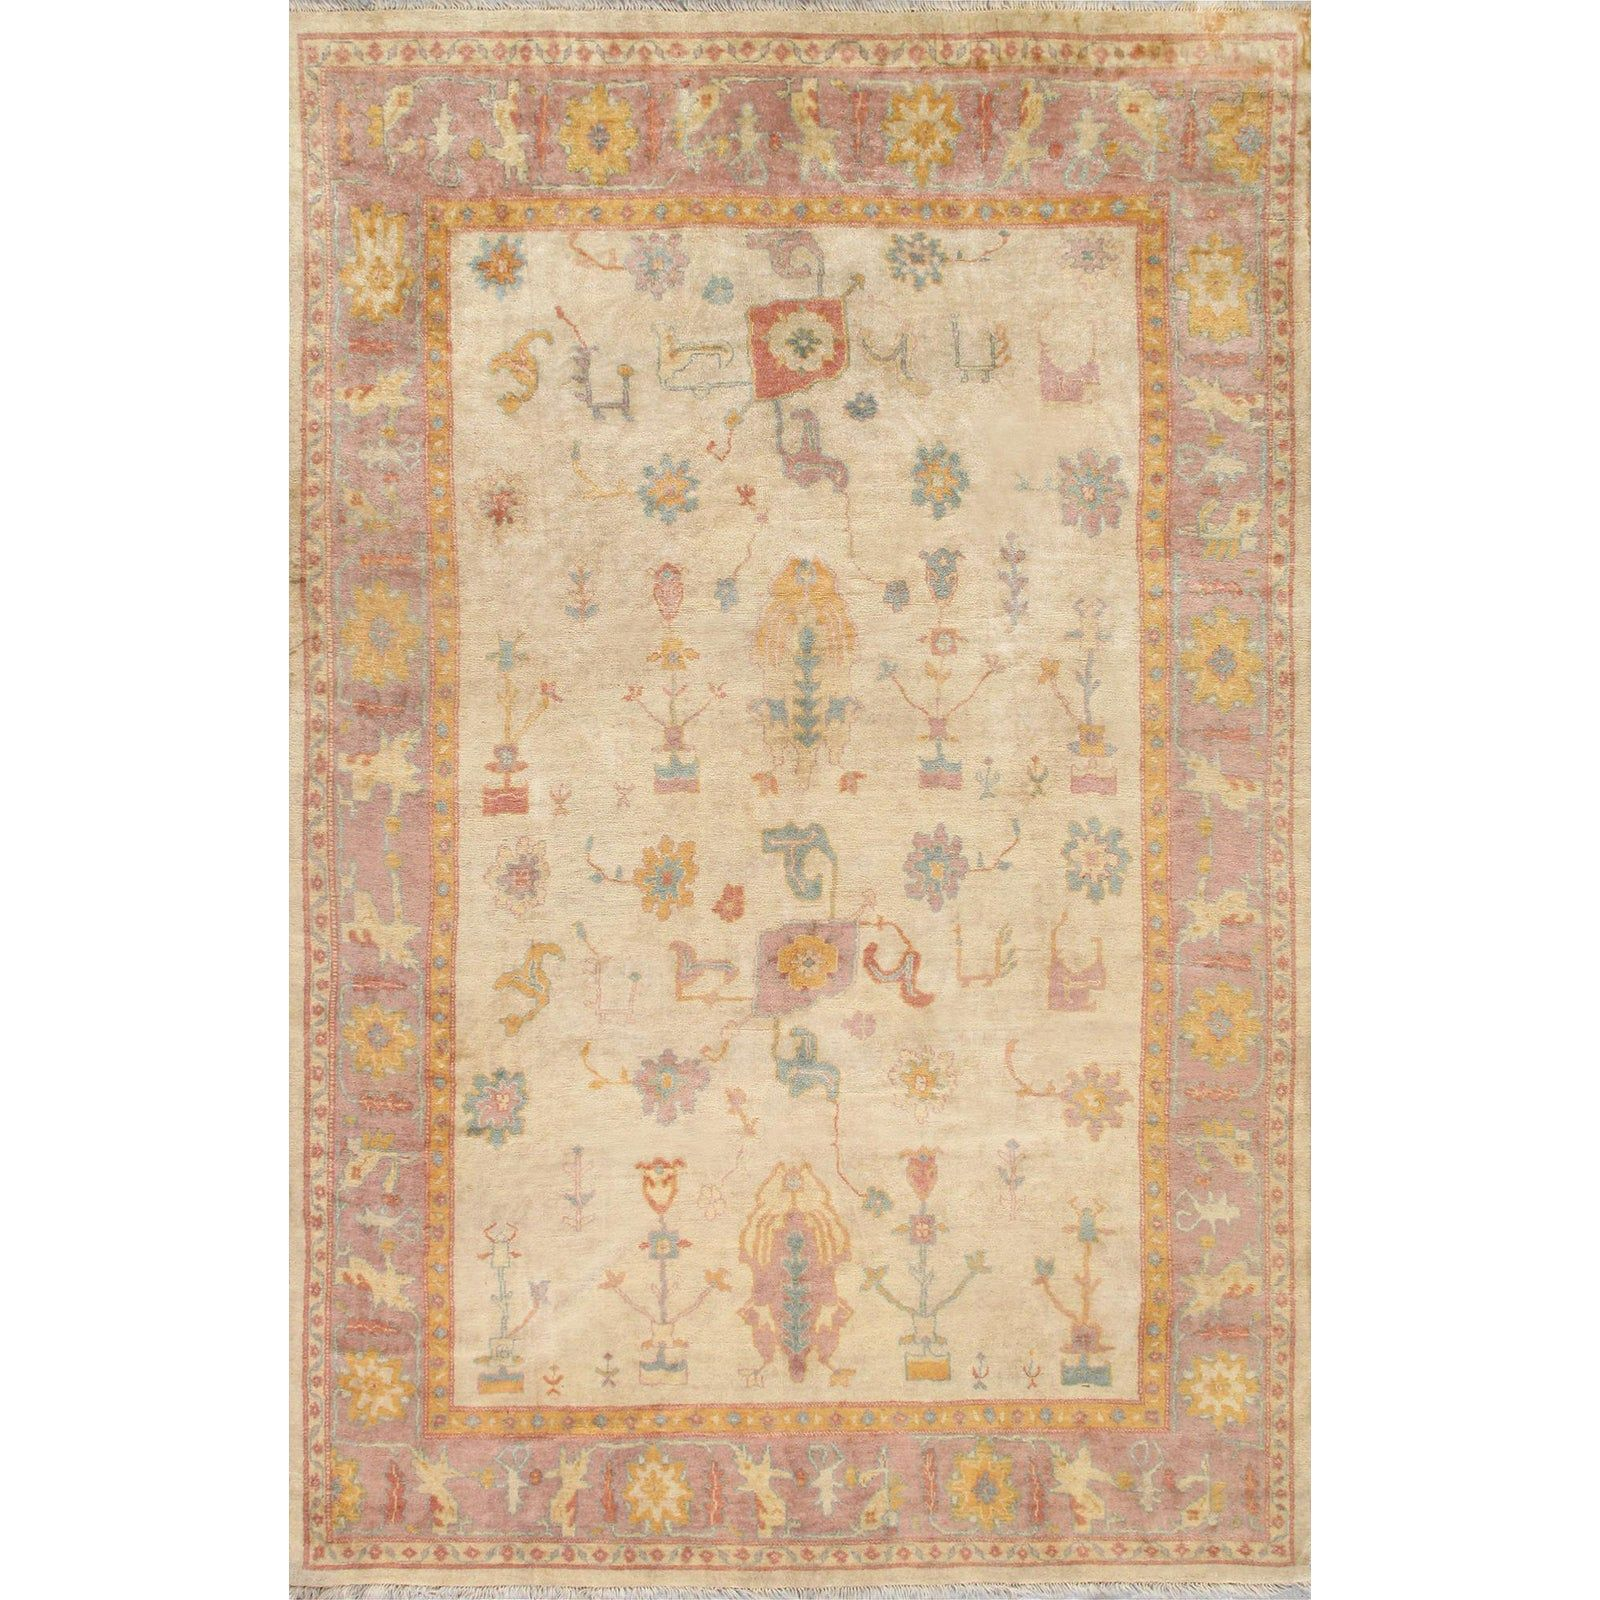 Tan And Pastel Pasargad Home Oushak Wool Area Rug 10 X 14 Wool Area Rugs Pasargad Colorful Rugs